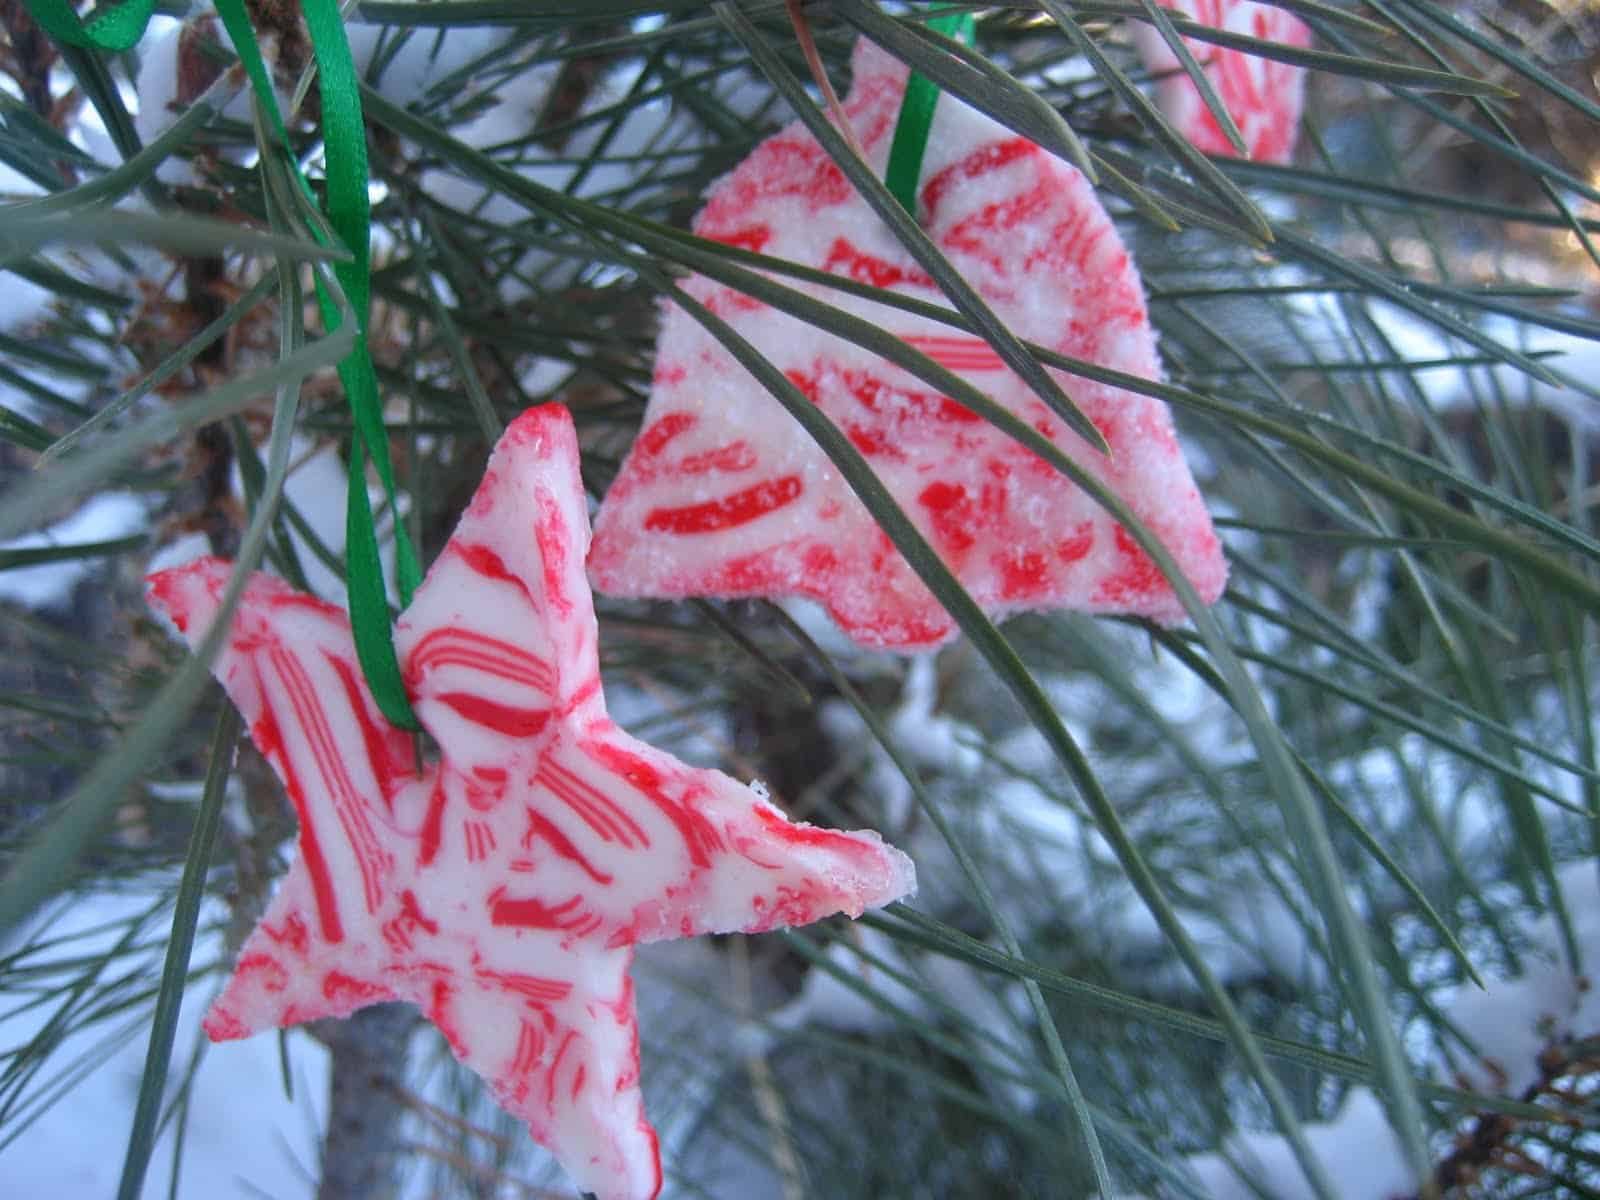 Sugared candy cane cookie cutter tree decorations